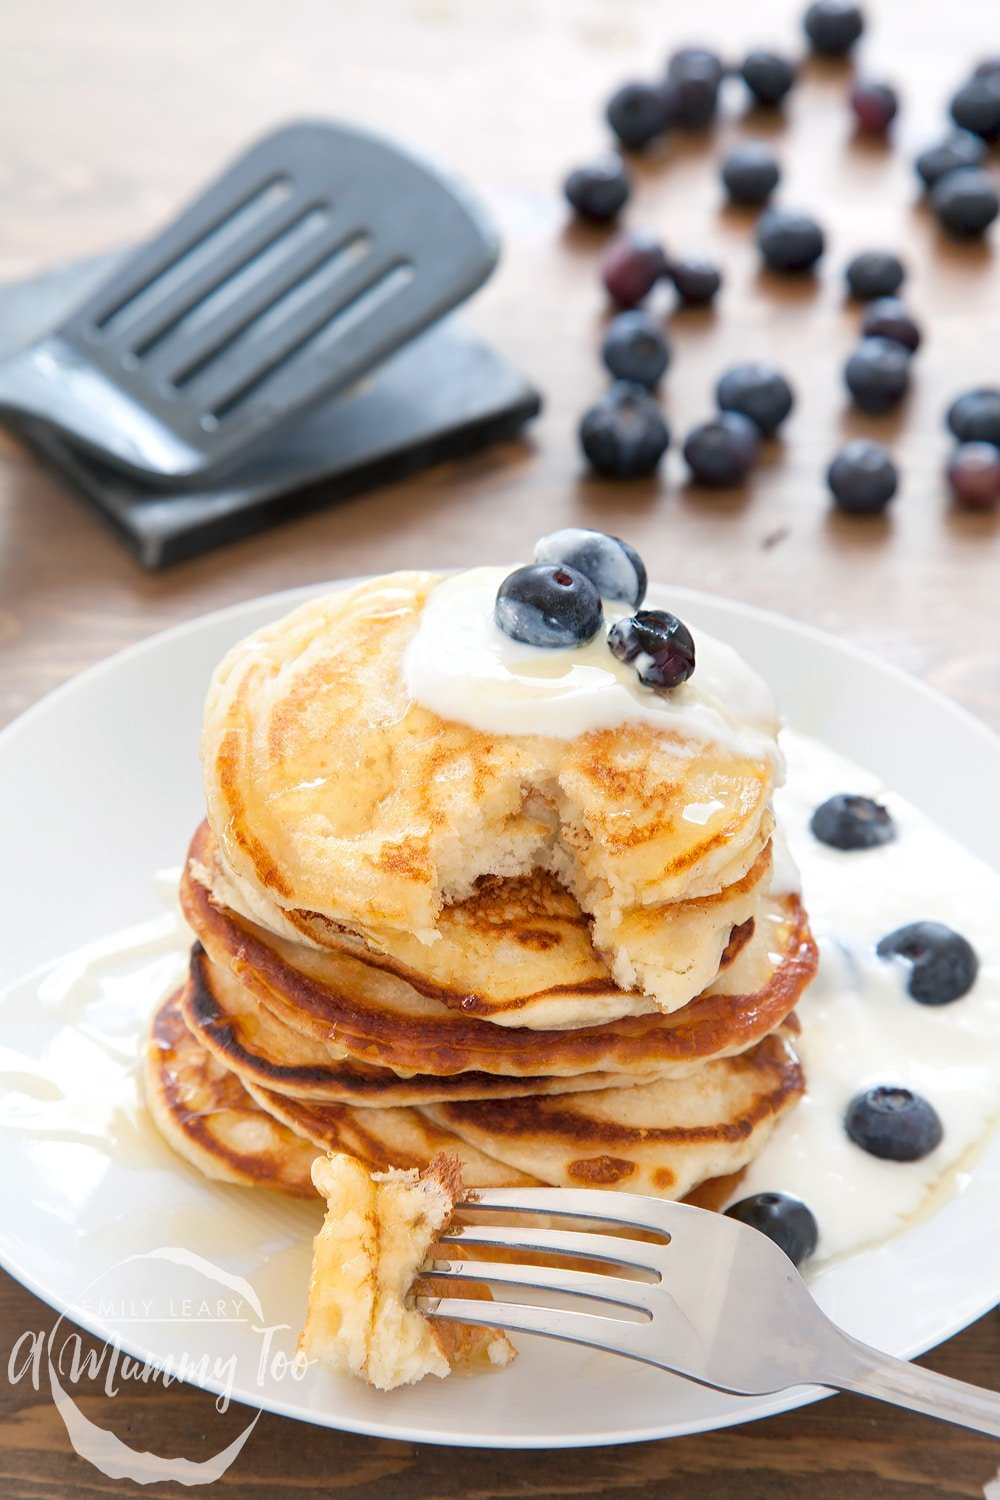 Beautifully fluffy coconut yogurt pancakes, topped with blueberries